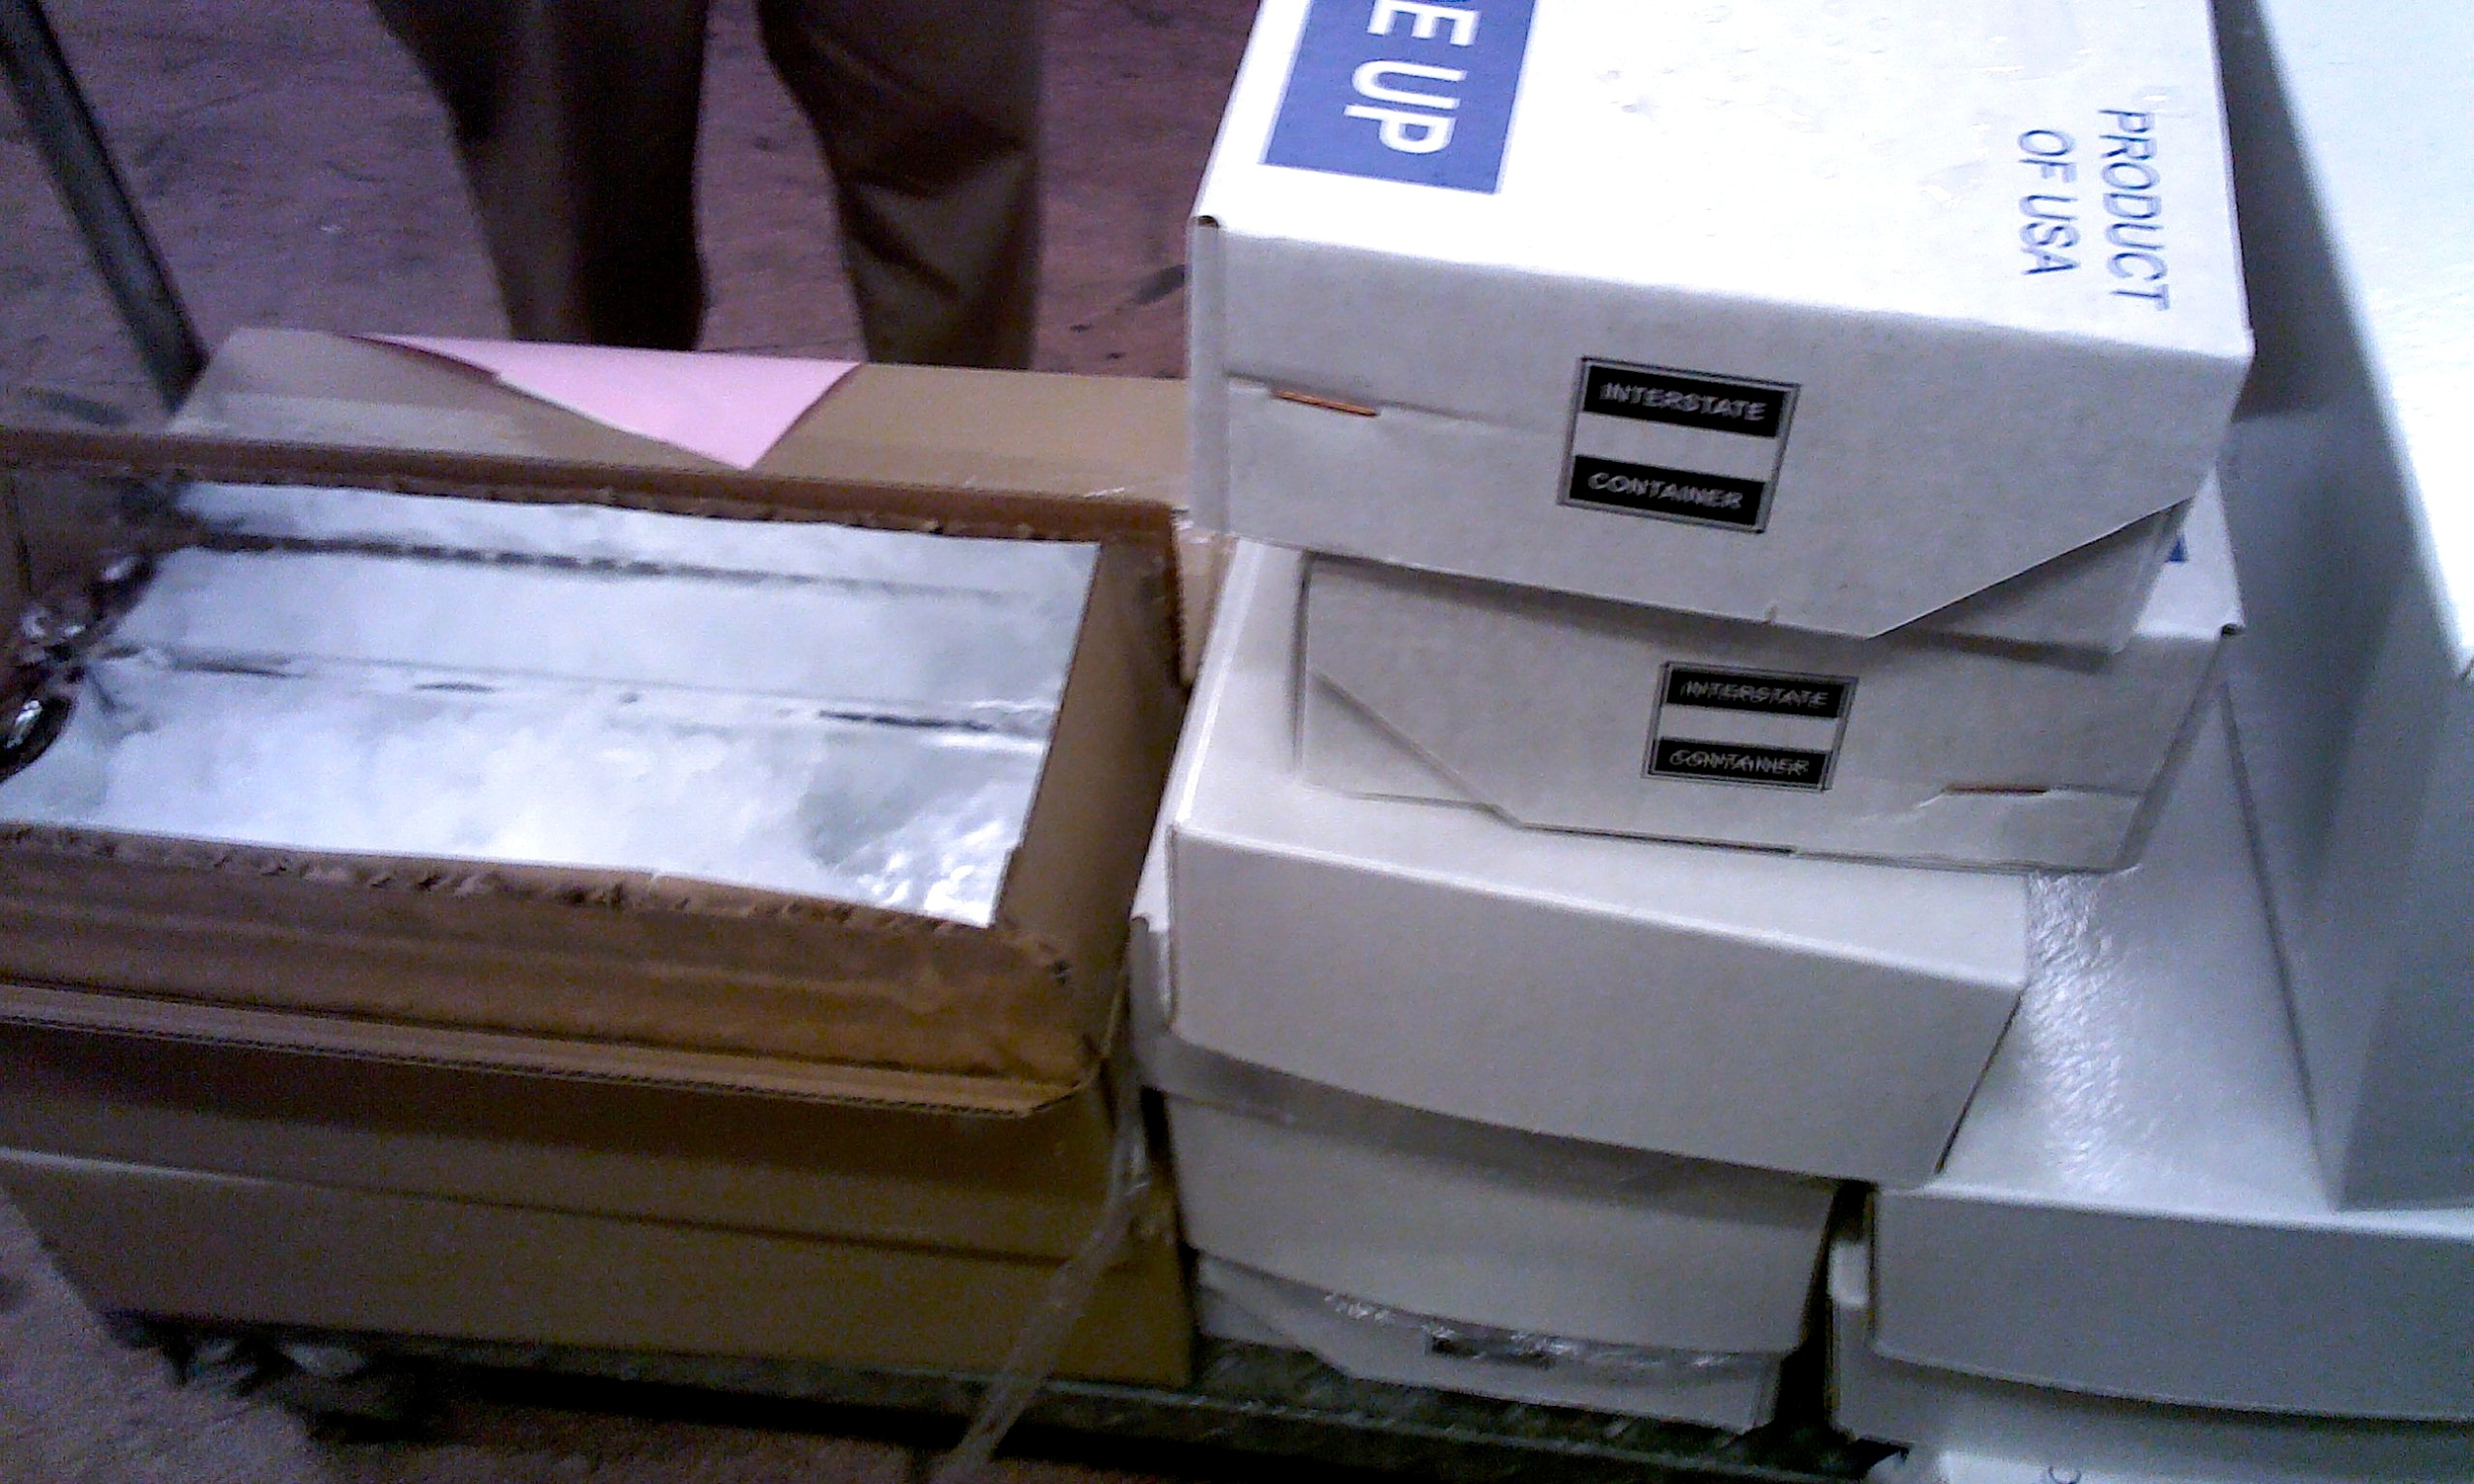 Delivered Boxes - Intact and ice-filled (1)